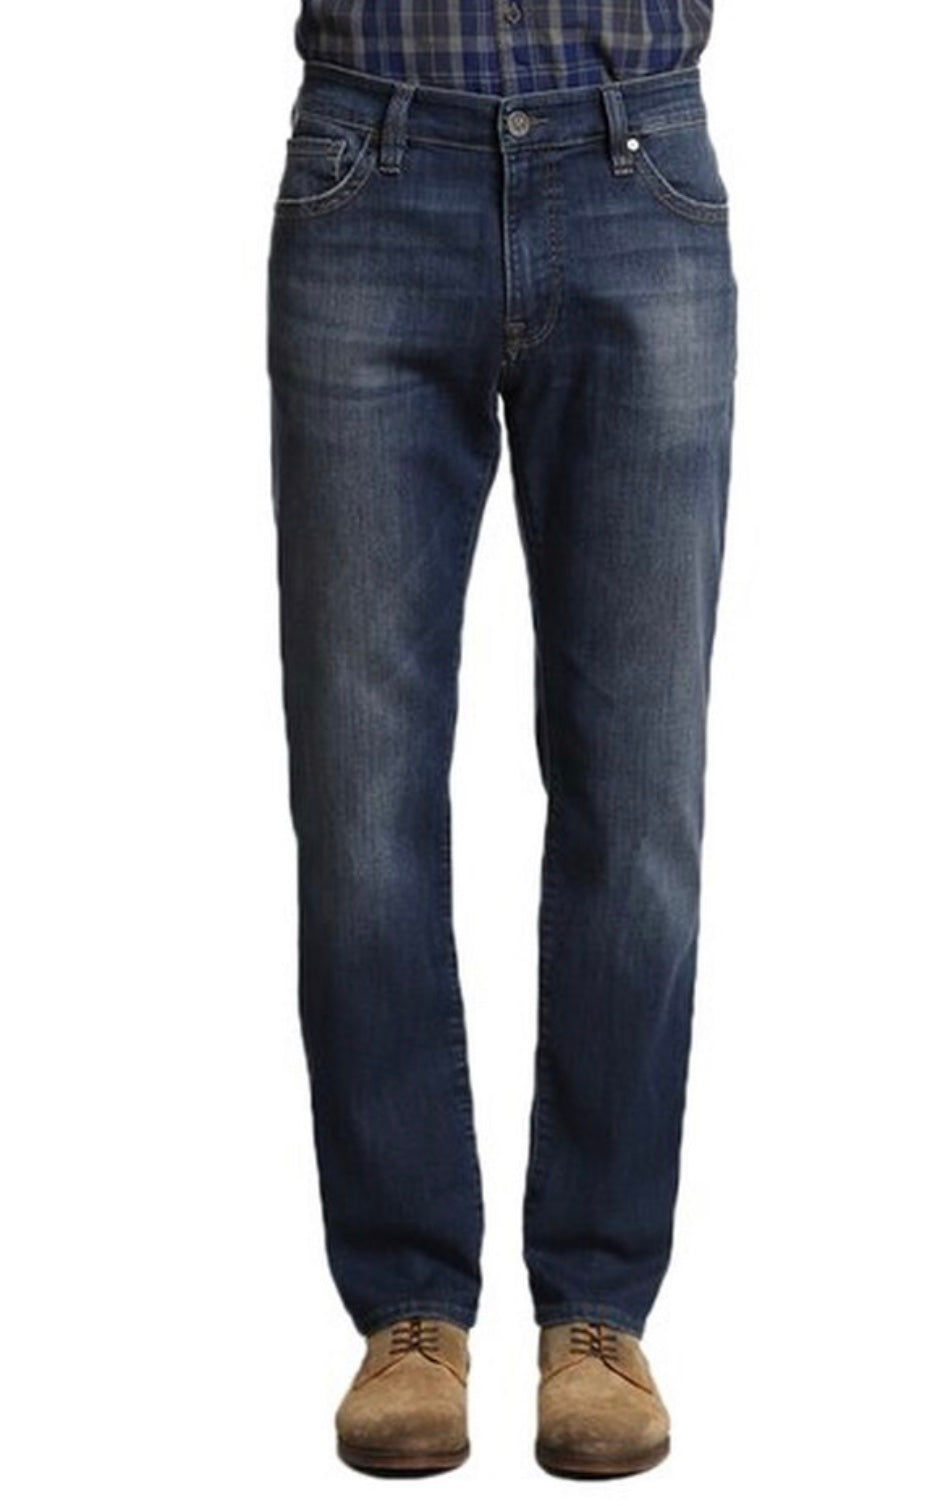 34 Heritage Courage Jean 2 colors